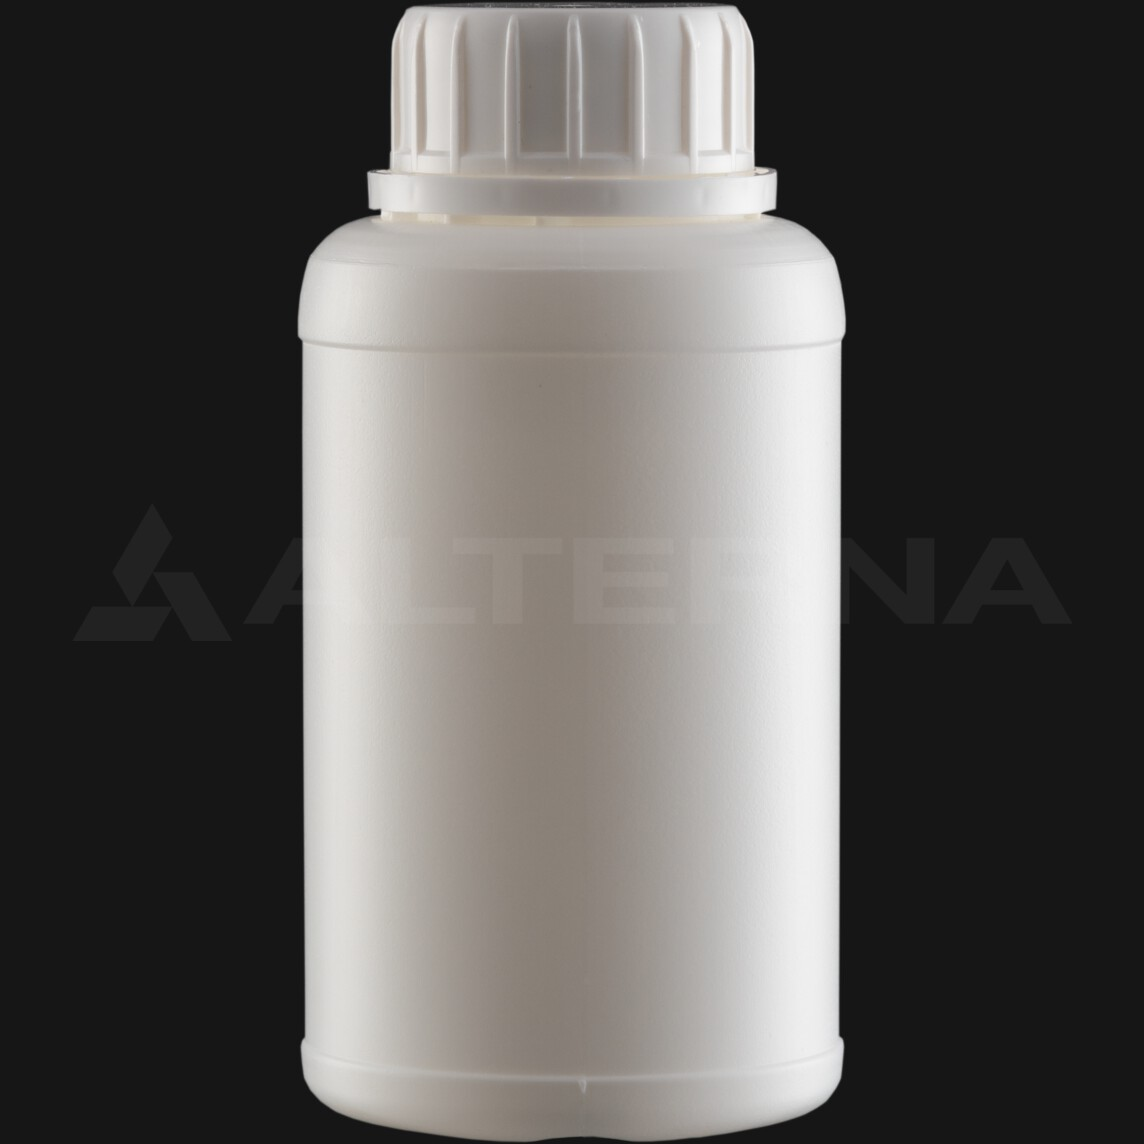 250 ml HDPE Bottle with 38 mm Foam Seal Vented Secure Cap